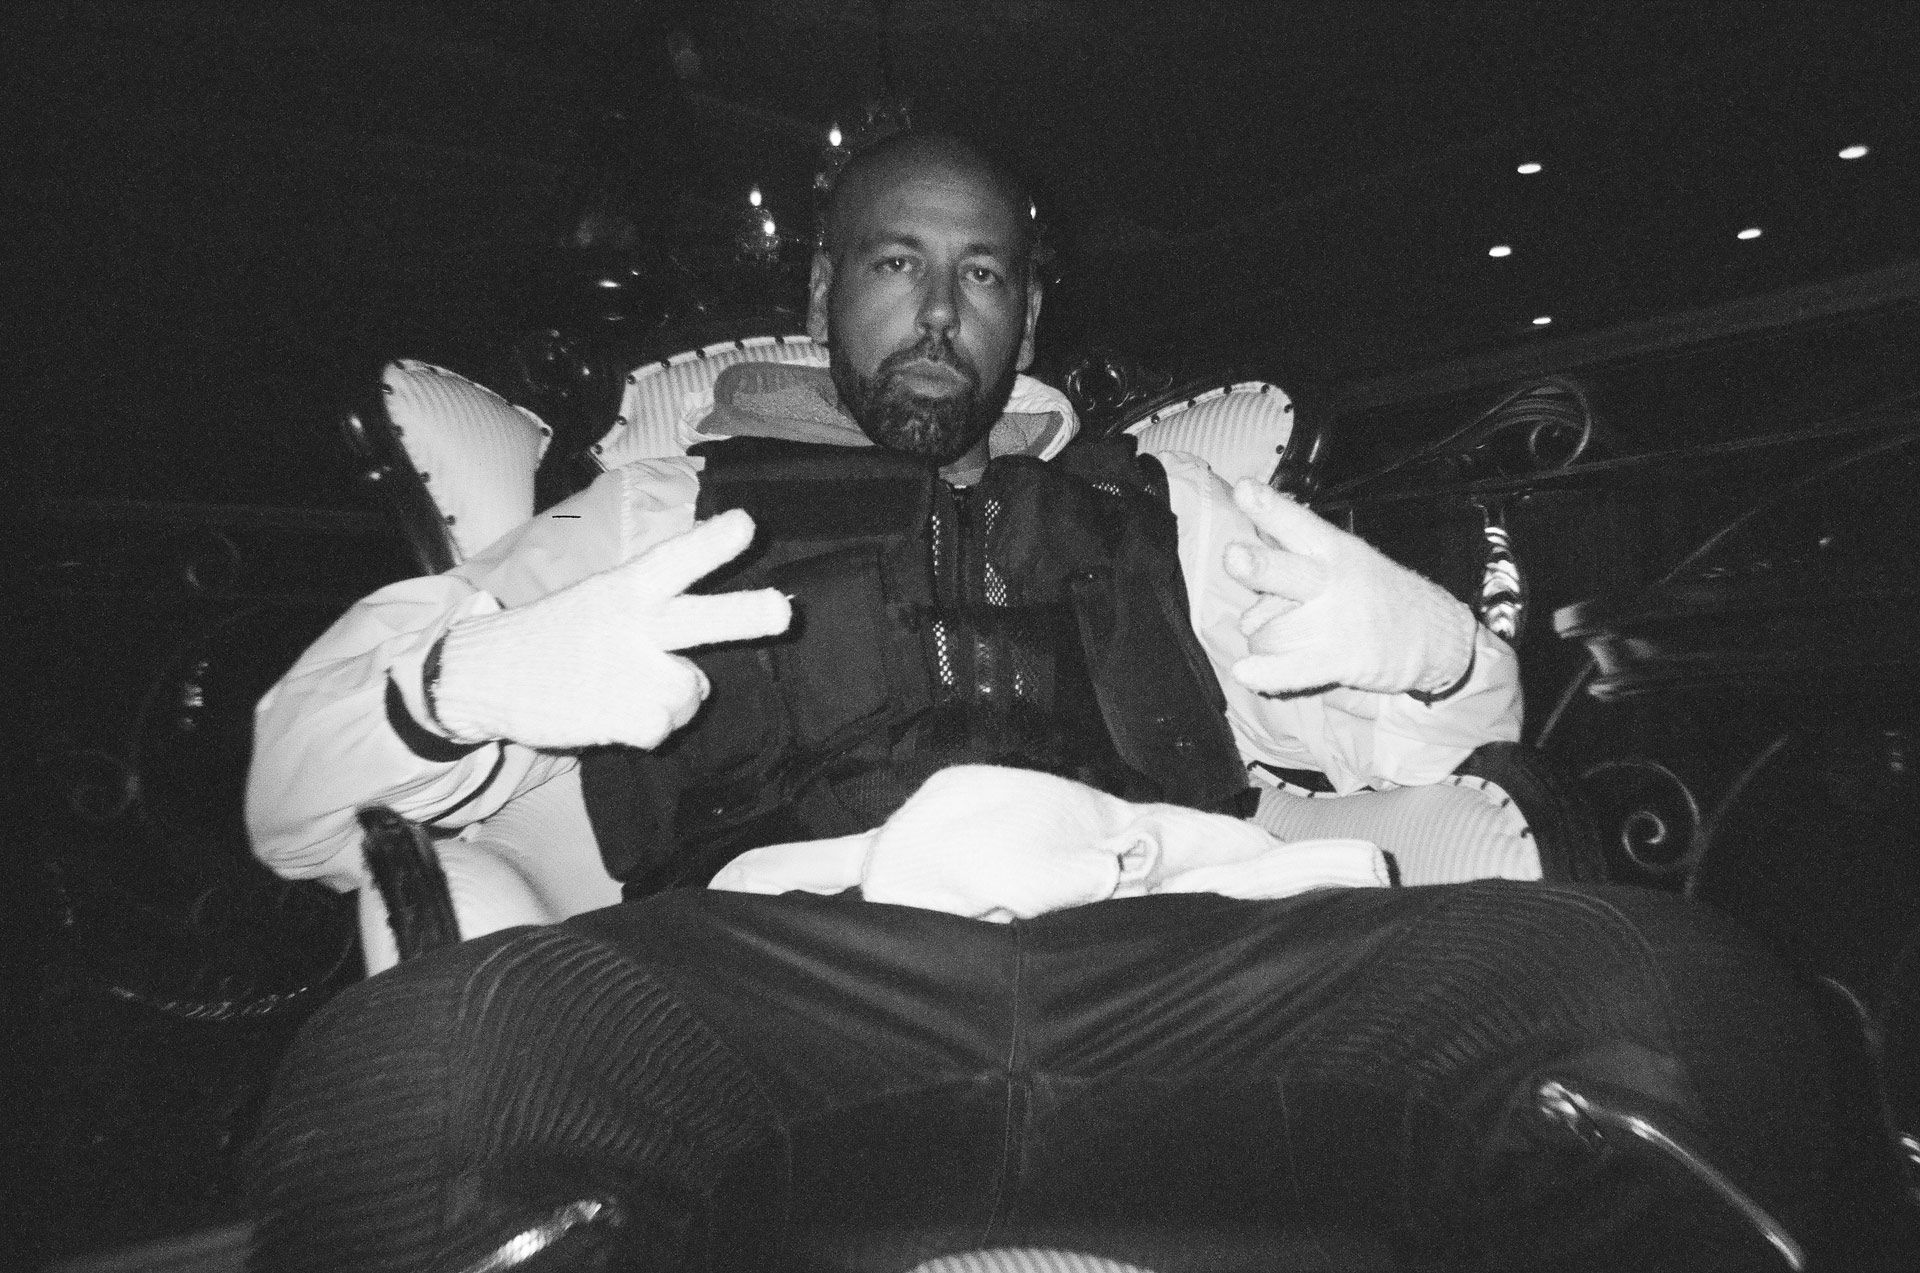 rapper Sinik sitting in chair legs spread wide for rapper Souldia music video Rouge Neige filmed by Les Gamins featuring Seth Gueko and Rick Pagano